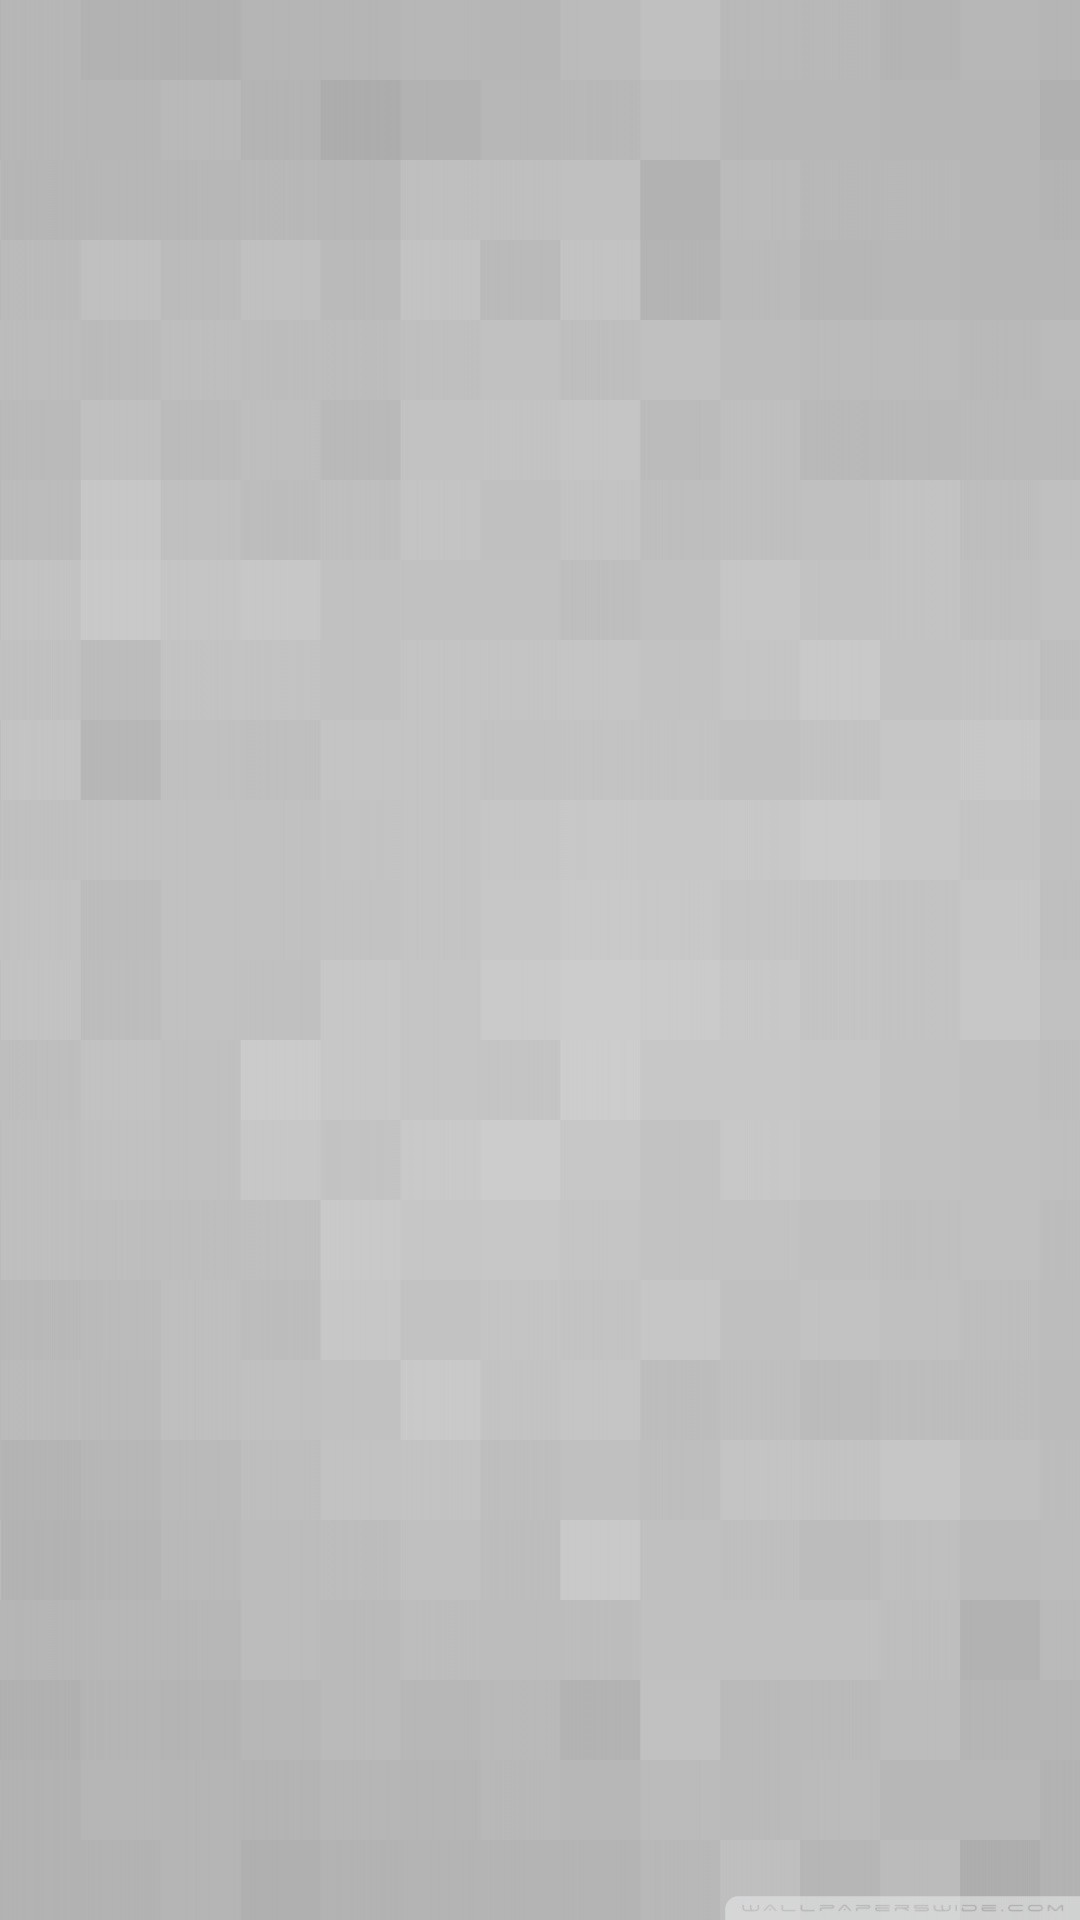 Free Gray Pixels Background phone wallpaper by adrianna0907